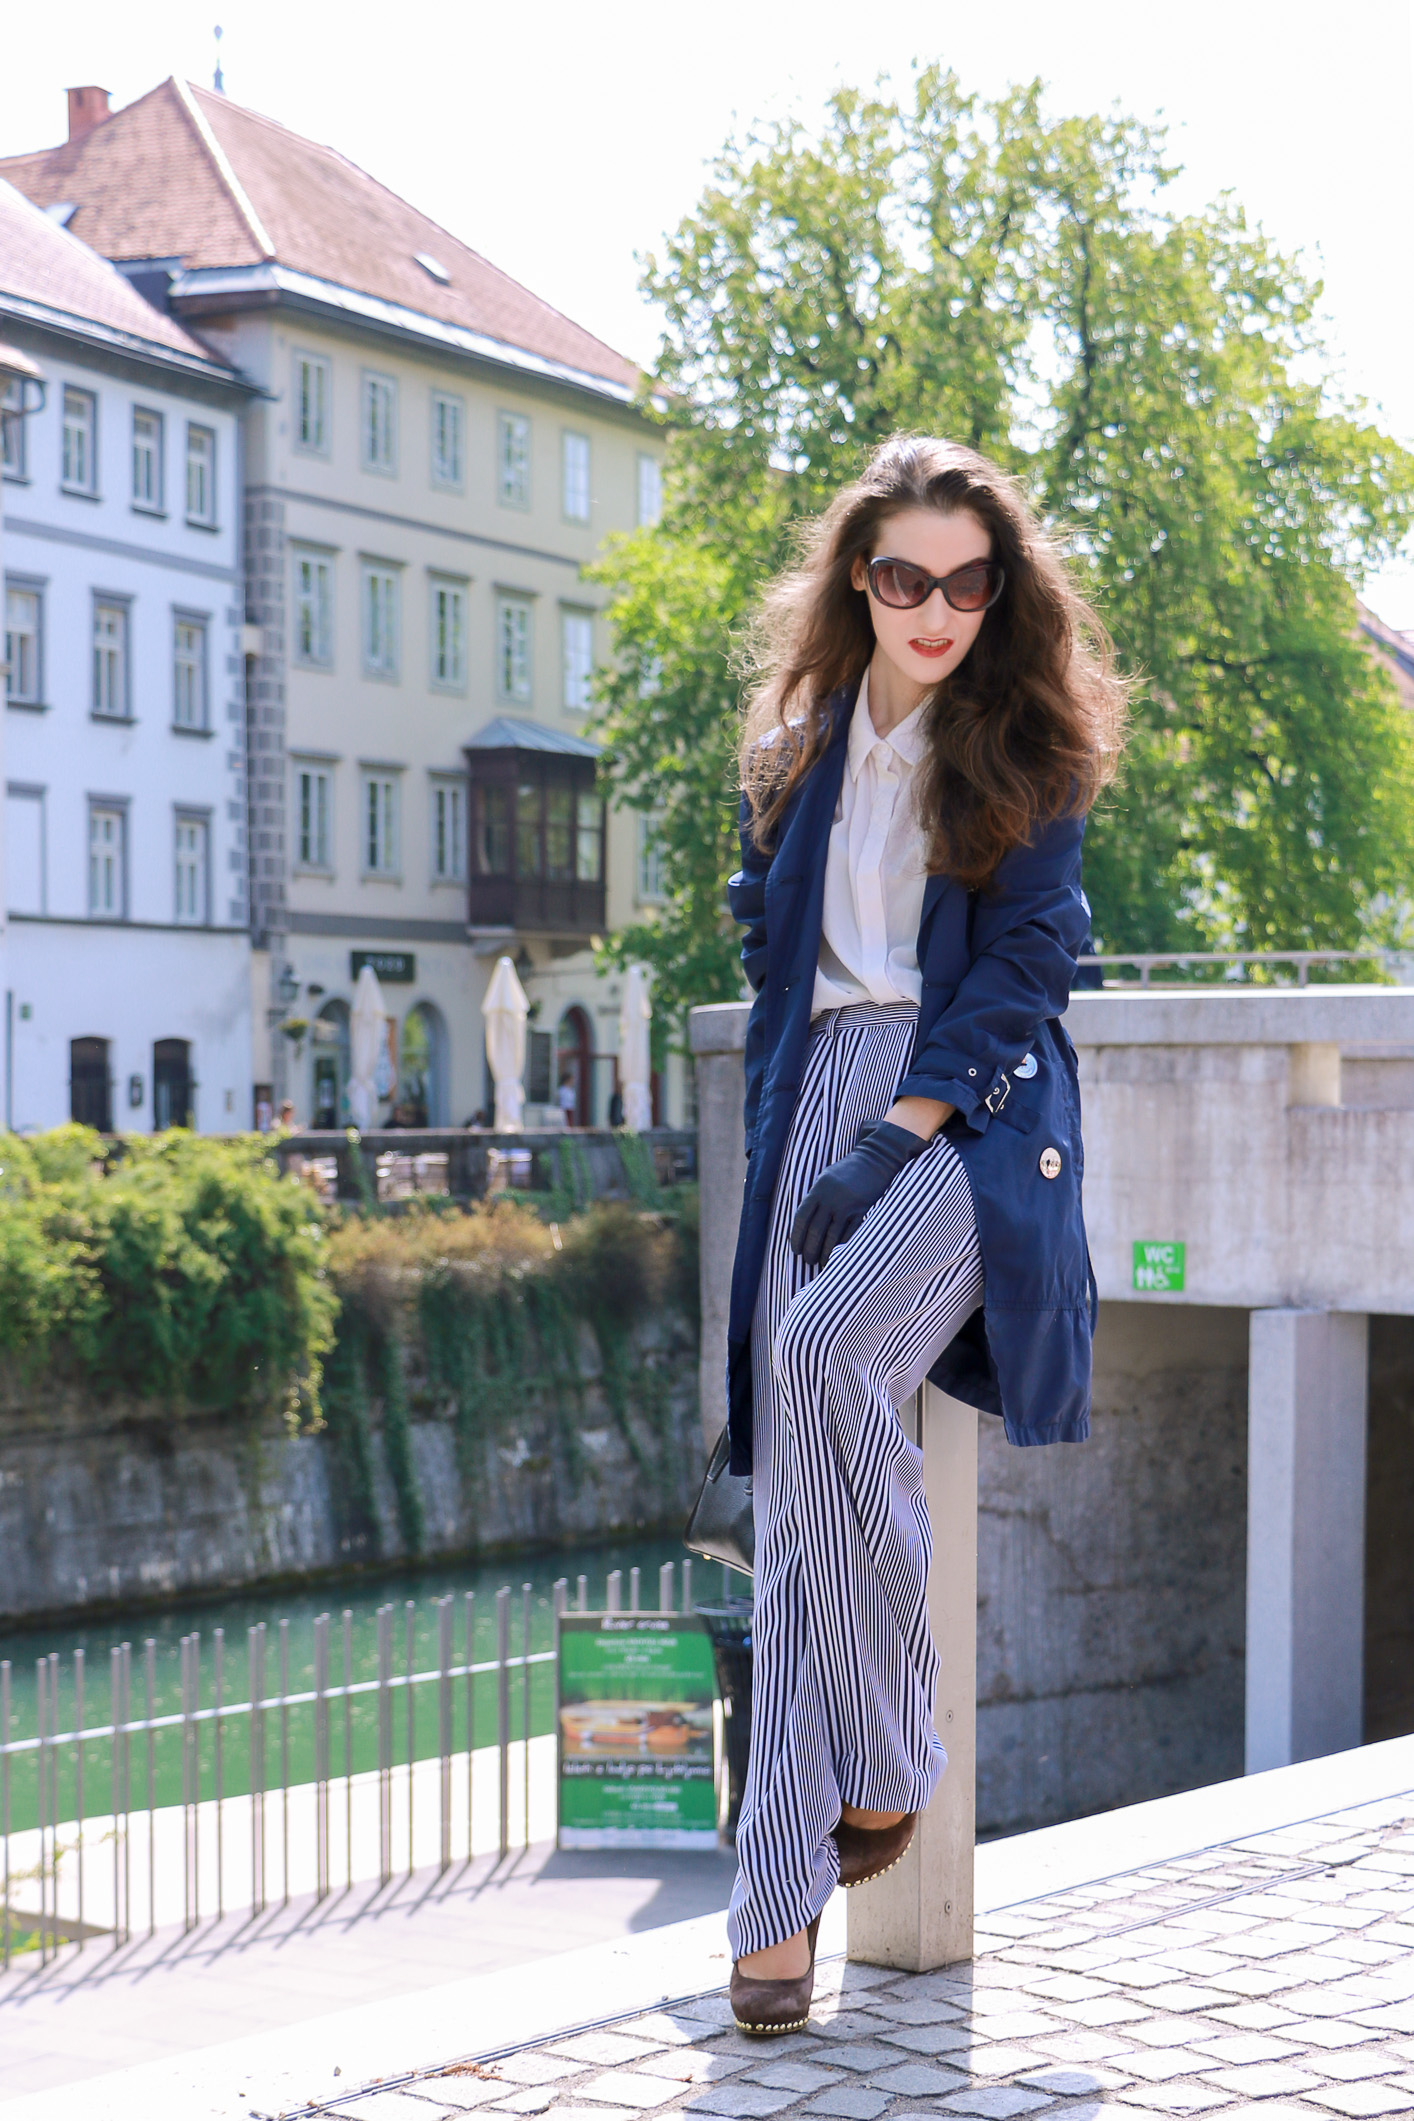 Fashion blogger Veronika Lipar of Brunette From Wall Street sharing how to style wide-leg striped trousers for a business casual outfit